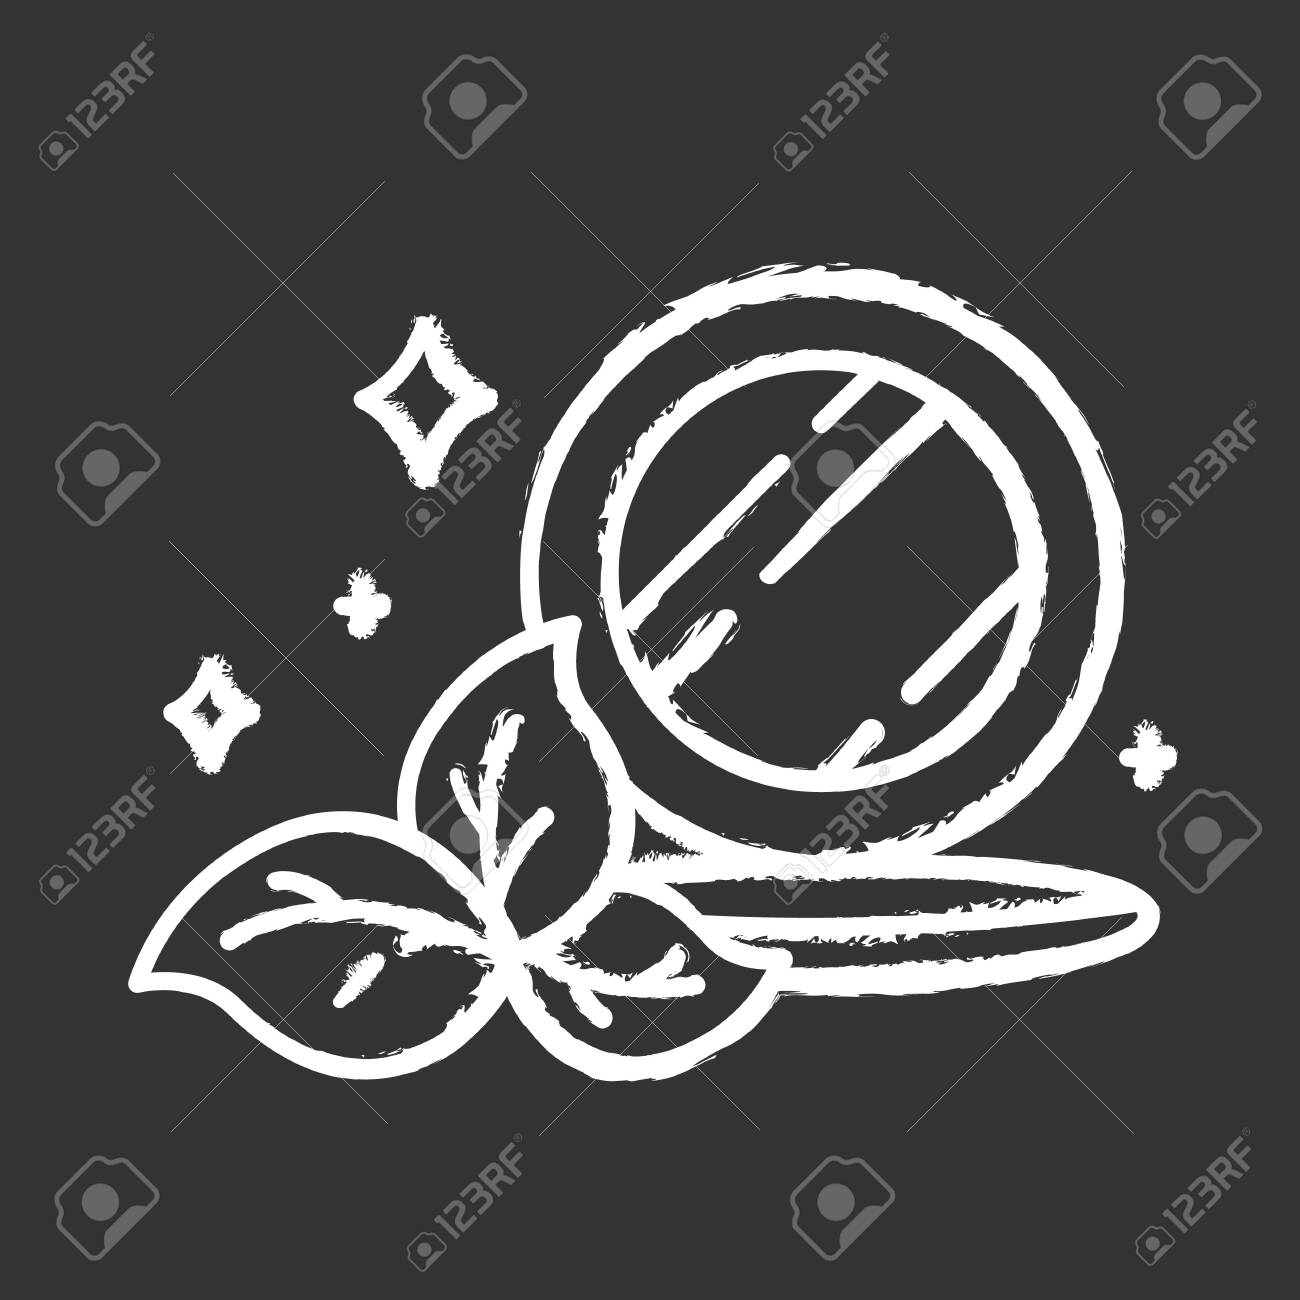 Compact pressed makeup powder chalk icon. Face skincare product. Mineral powder foundation. Bronser. Visage beauty aid item with mirror. Organic cosmetics. Isolated vector chalkboard illustration - 135088021